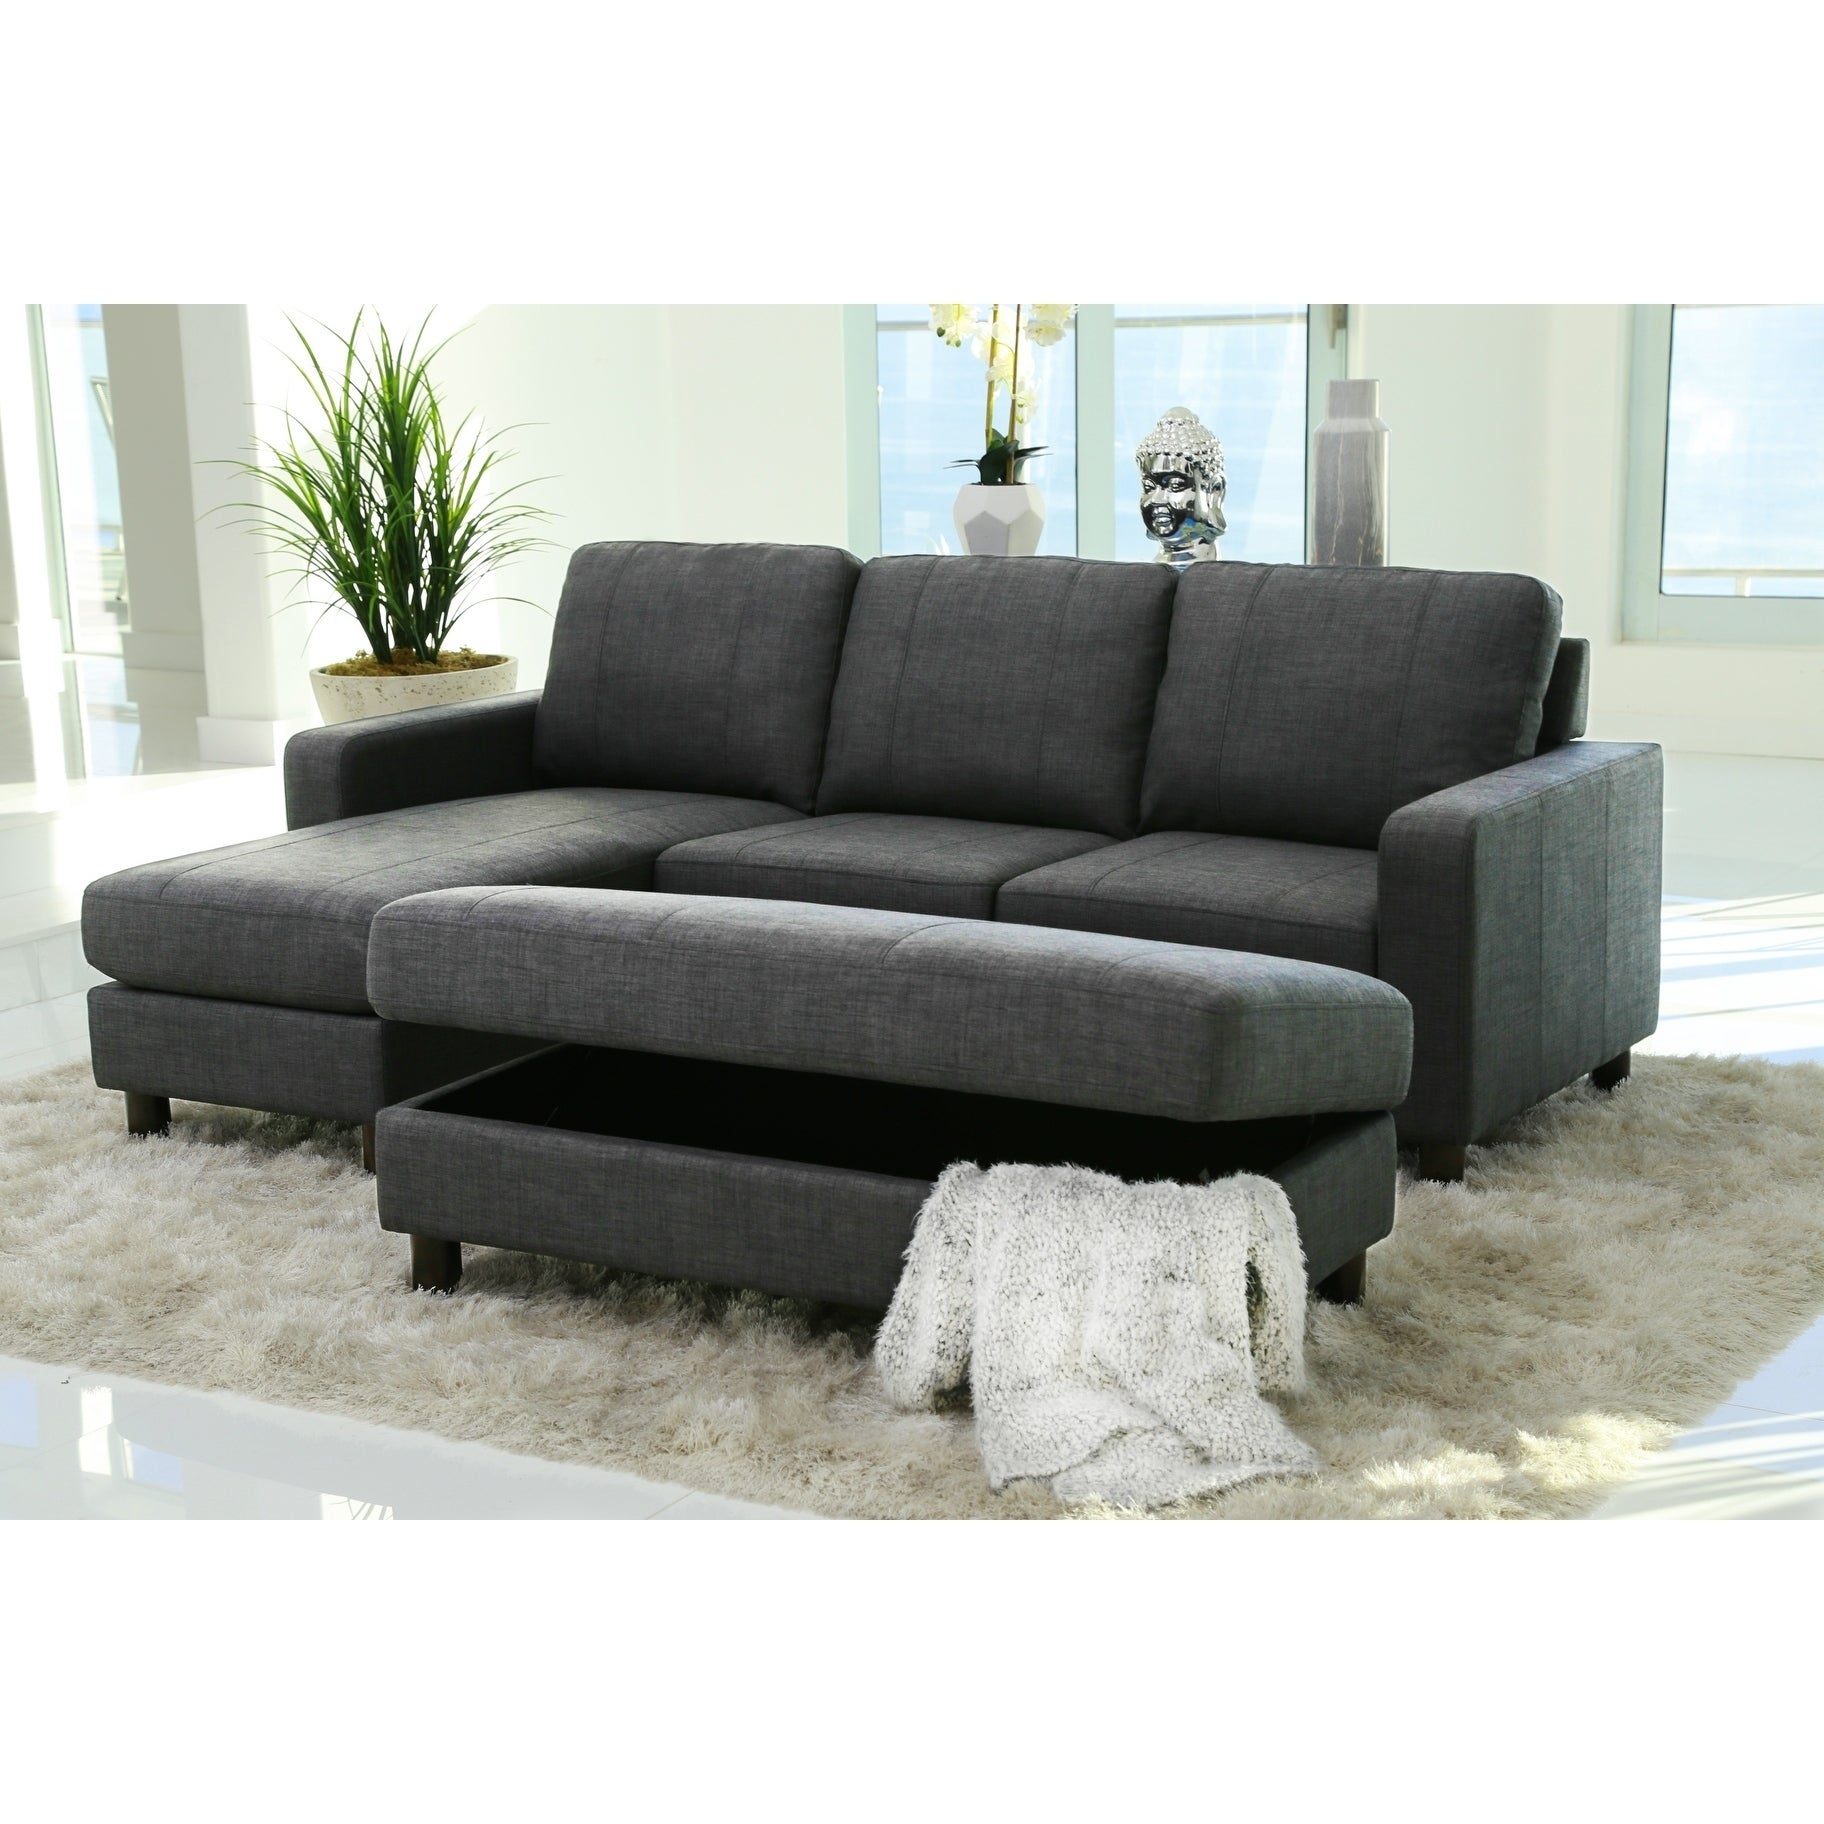 Shop Abbyson Berkeley Grey Fabric Reversible Sectional And Ottoman Free Shipping On Orders